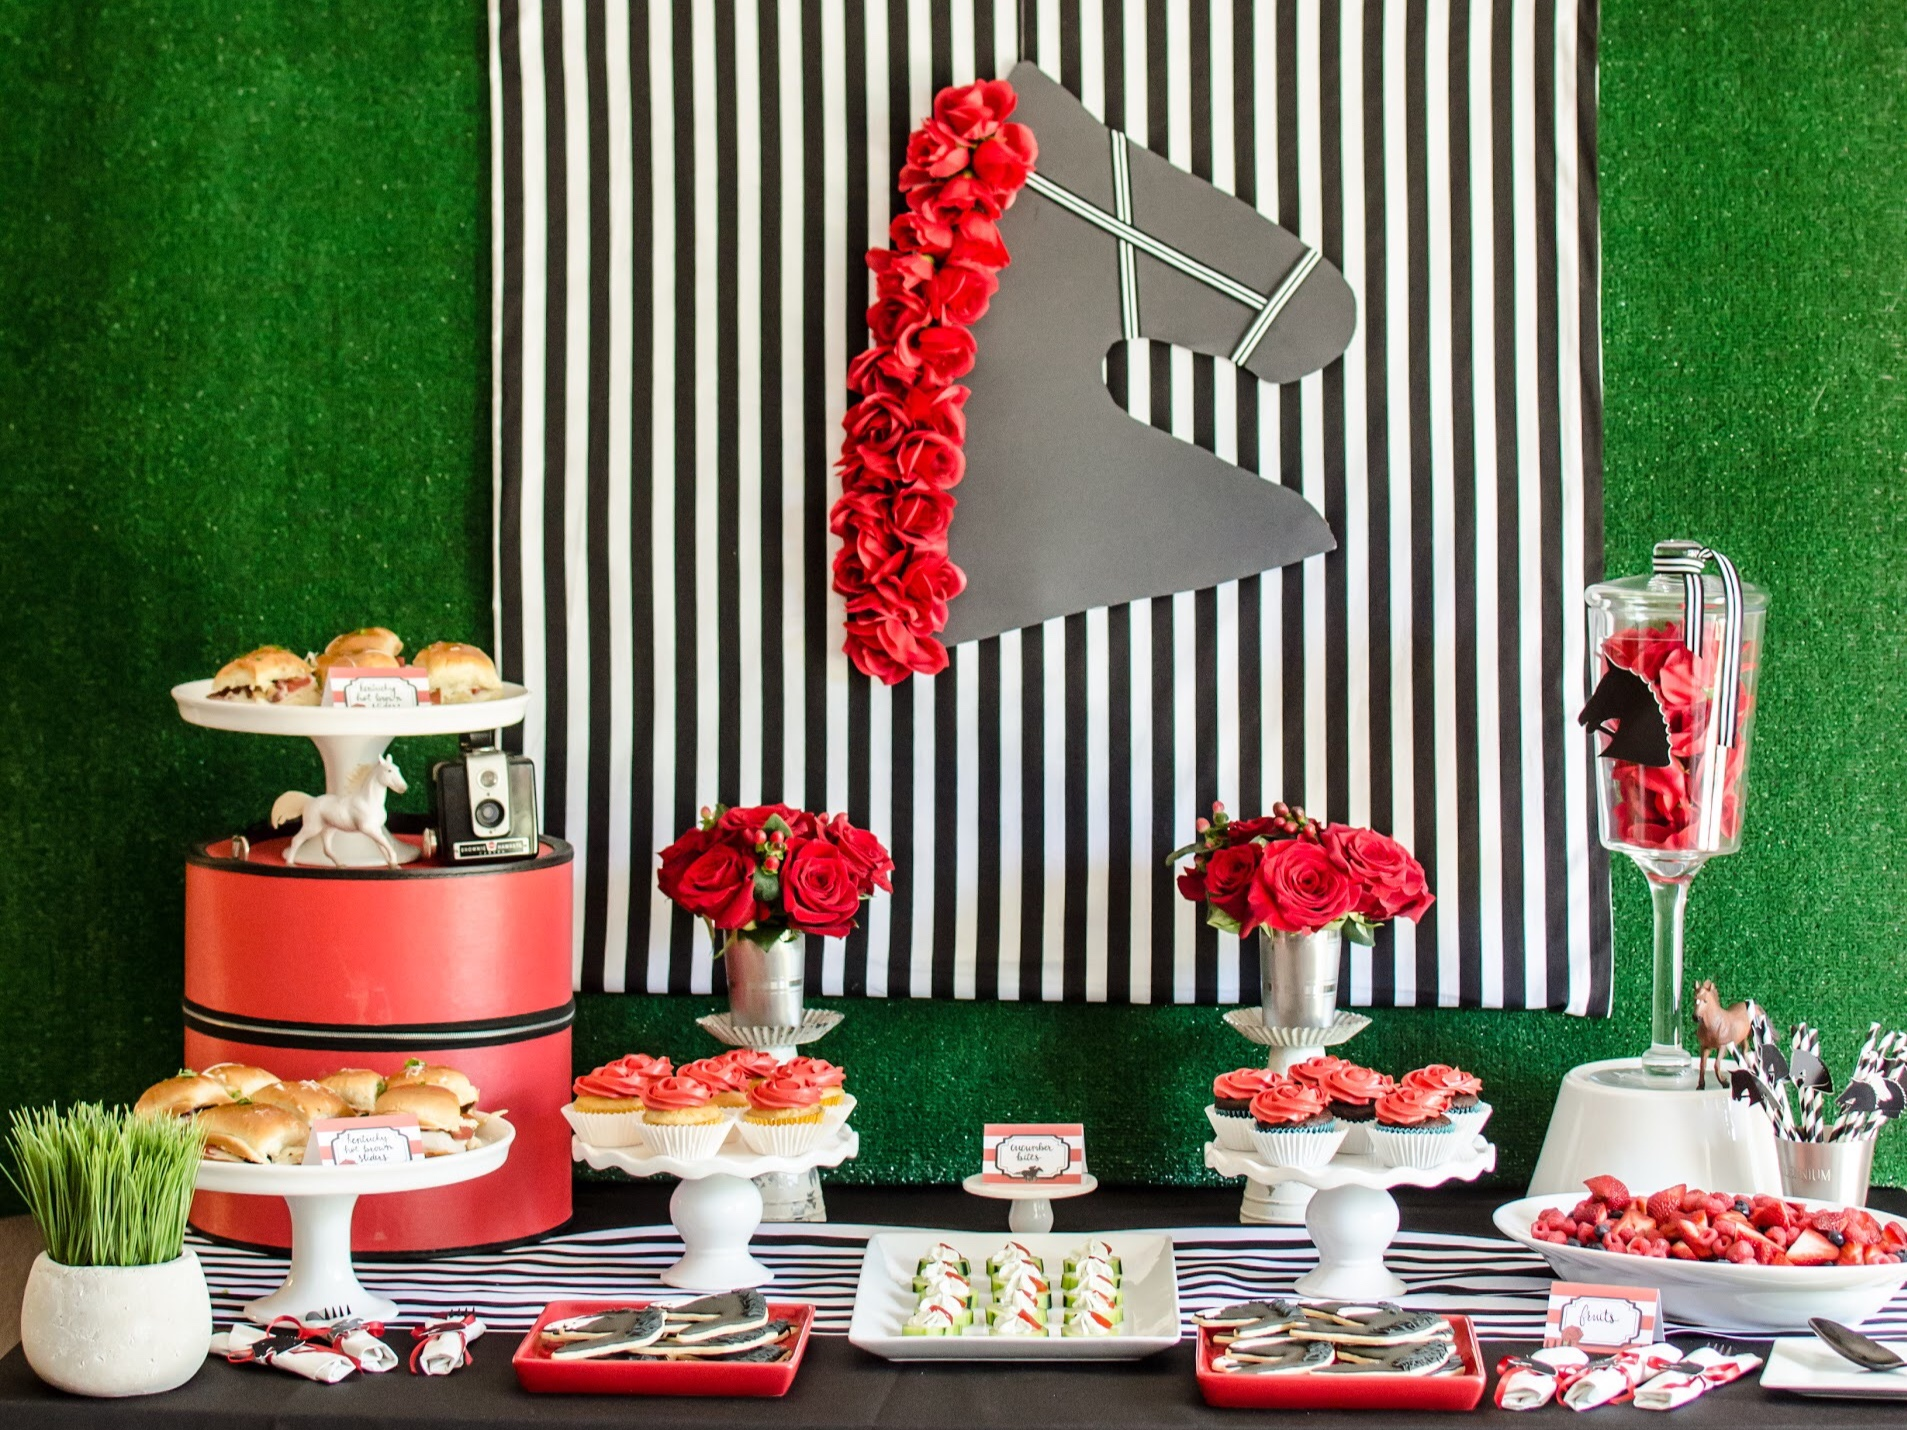 Create the perfect party table backdrop for your Kentucky Derby Party with this striped background and faux grass with a horse silhouette wearing red roses on its mane. Styling by party planner Mint Event Design in Austin Texas www.minteventdesign.com #kentuckyderbyparty #kentuckyderby #partyideas #derbyday #runfortheroses #partytable #partybackdrop